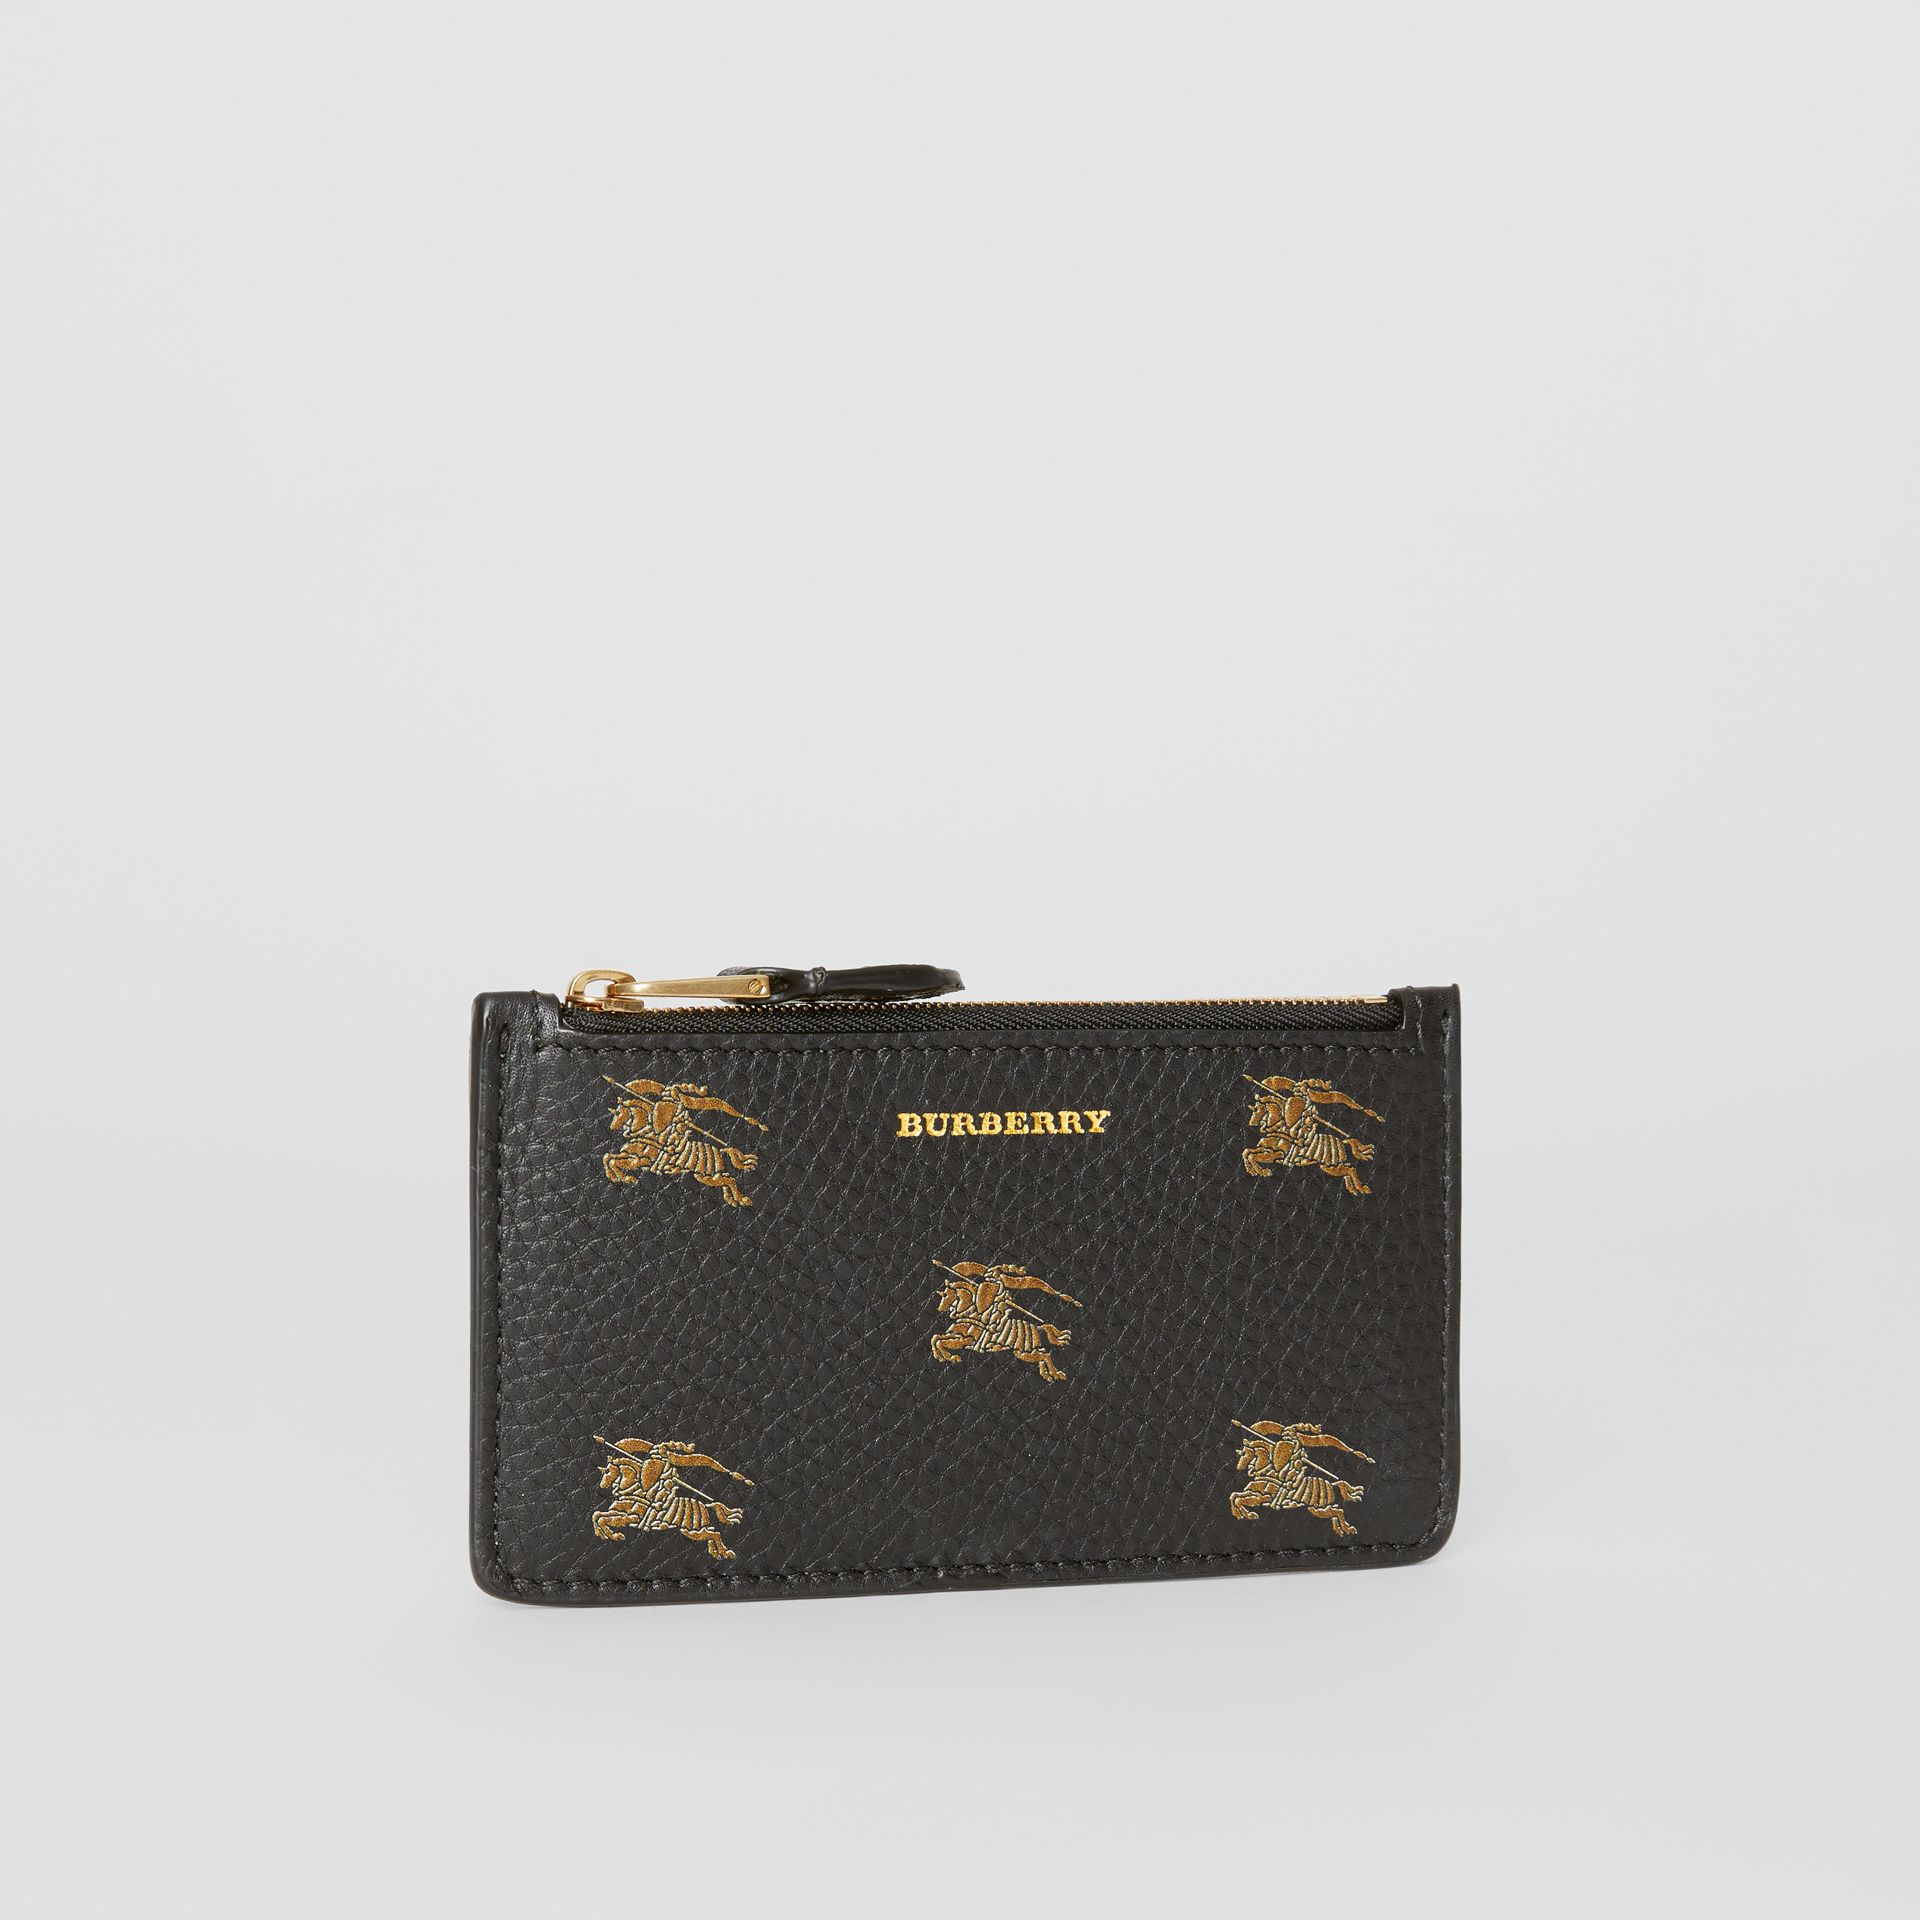 Equestrian Knight Leather Zip Card Case in Black - Women | Burberry - gallery image 4